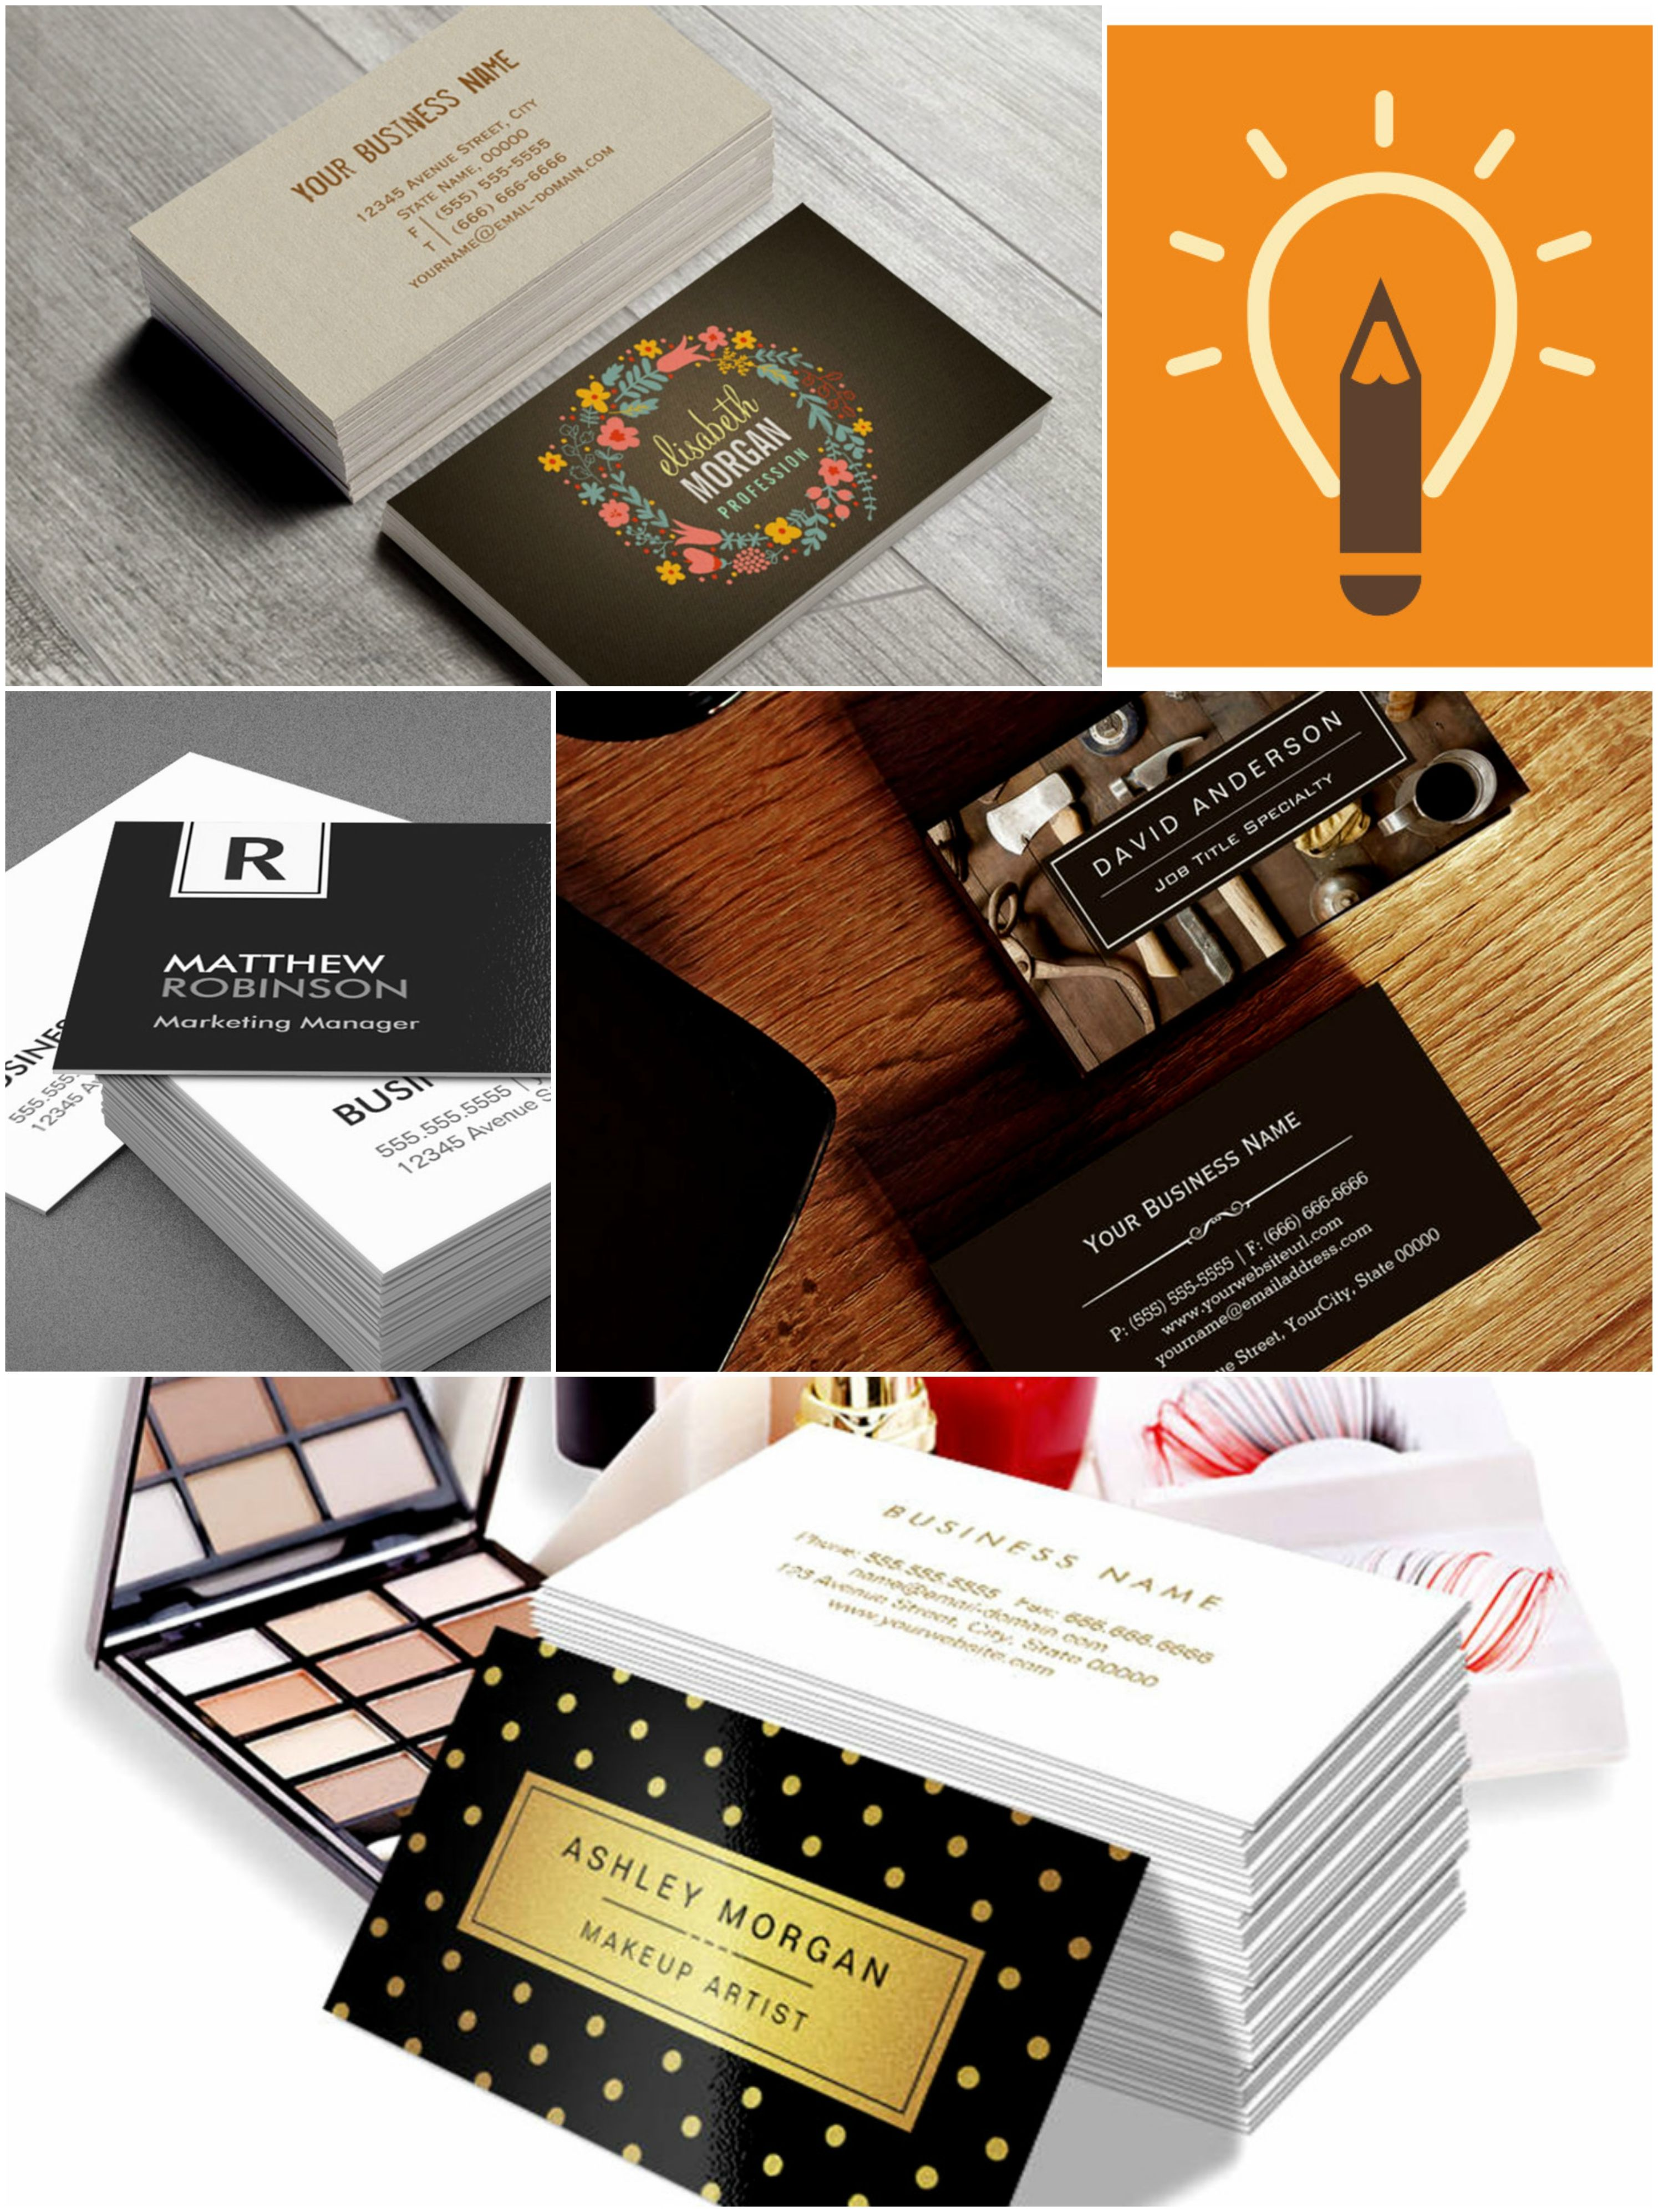 Professional Business Cards By Cardhunter Graphic Design Studio Visit Store To See More Designs Professional Business Cards Graphic Design Studios Design